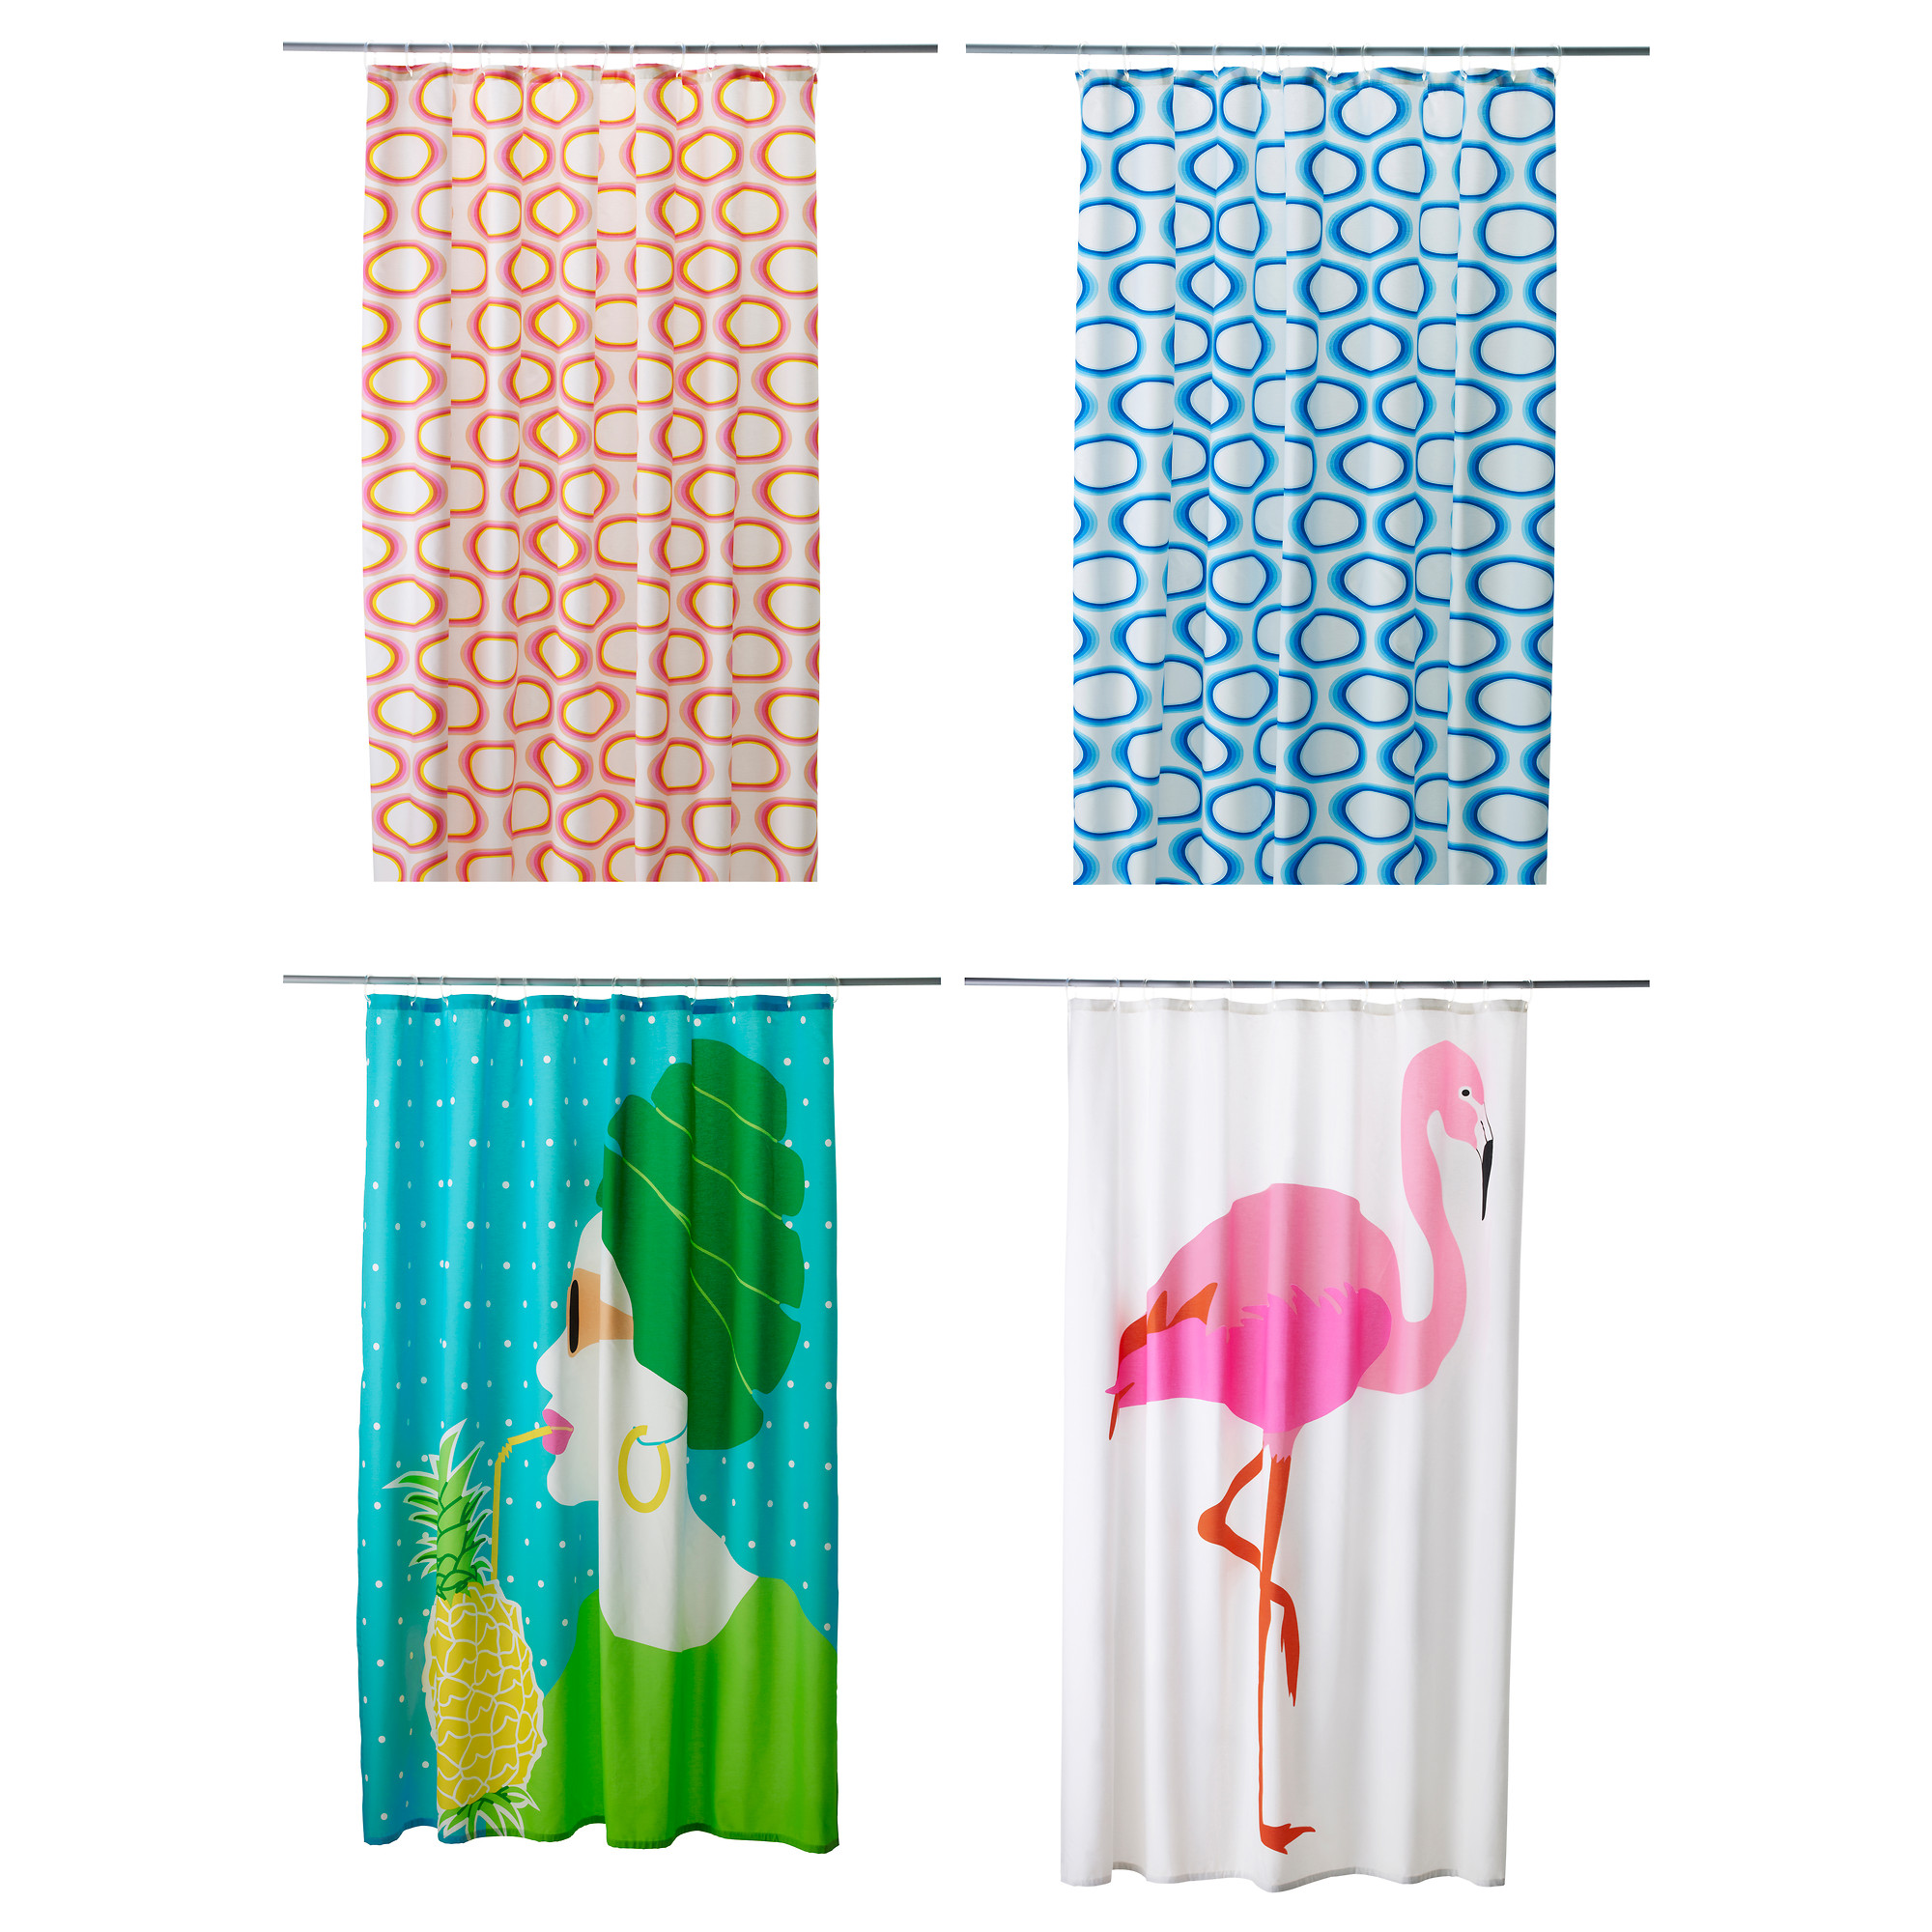 Ikea Shower Curtain | Stall Shower Curtains | Shower Curtain Rail